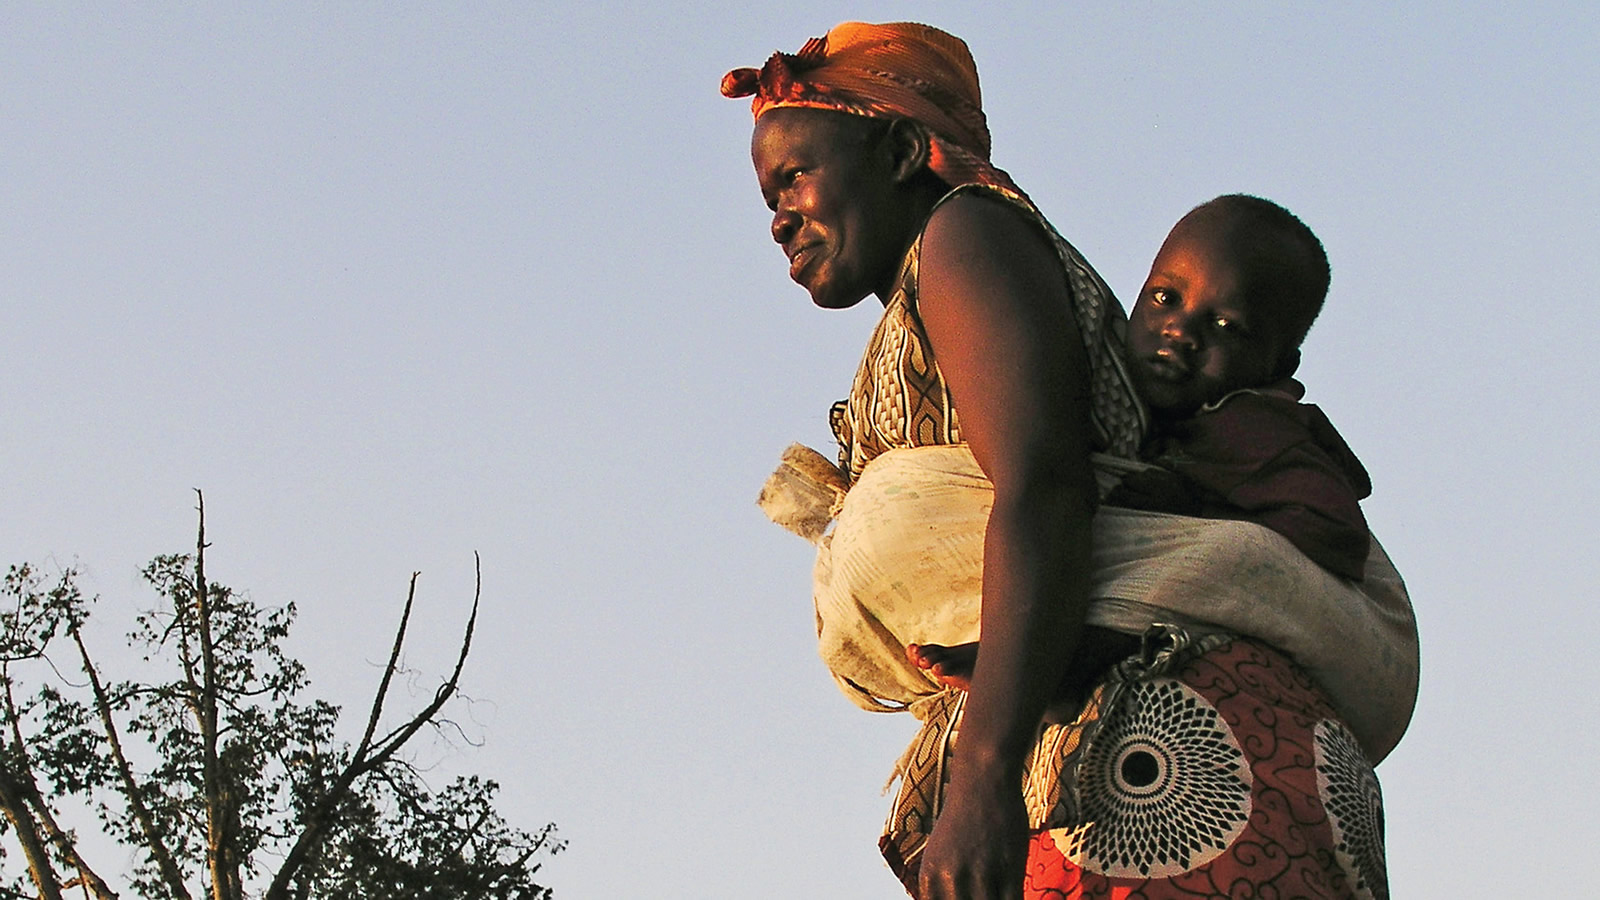 African Woman Carrying Child